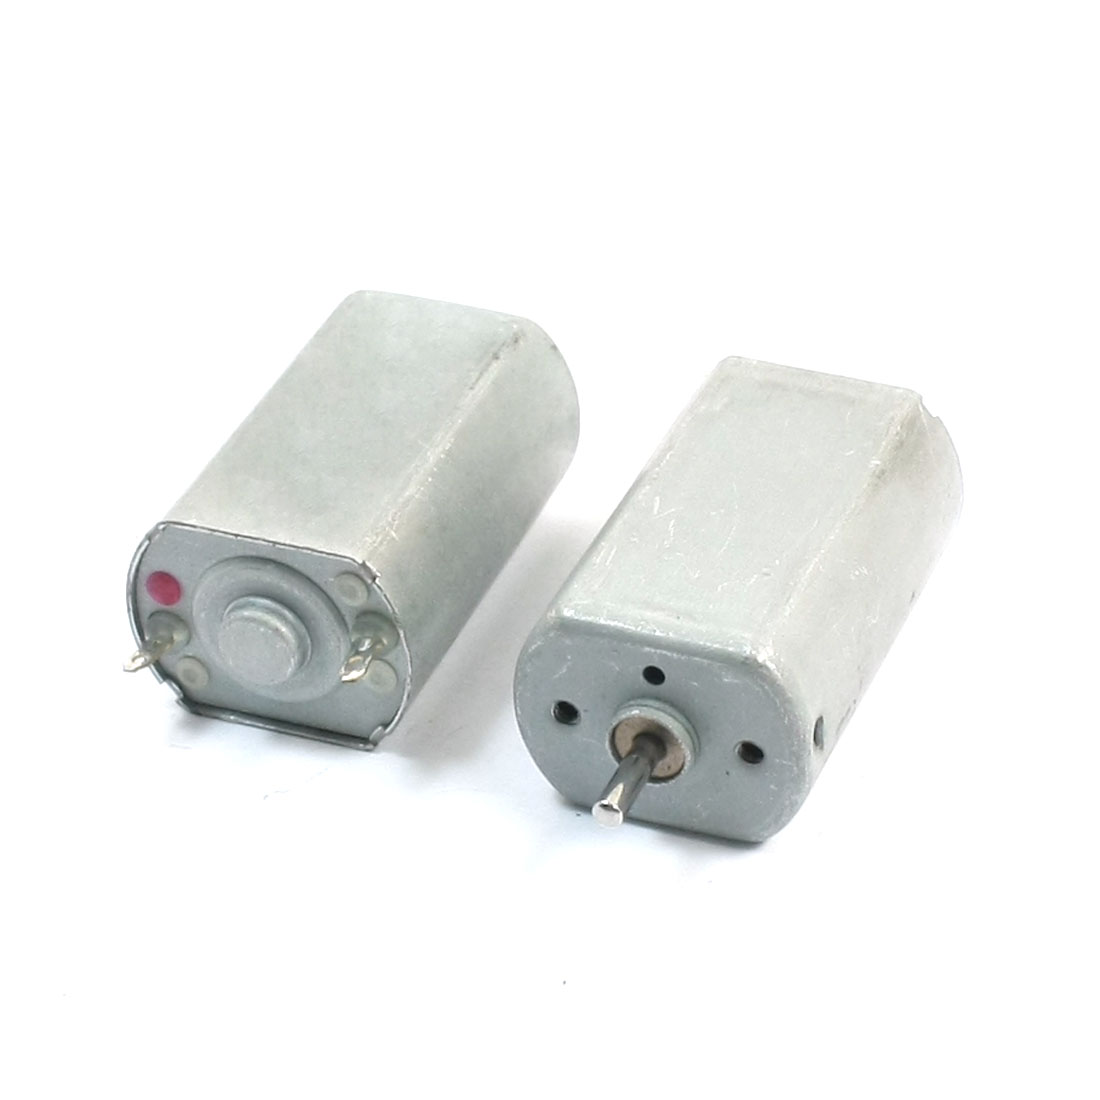 DIY Parts Metal Shell 12V 9000R/MIN 2mm Shaft Dia Miniature DC Motor 2pcs